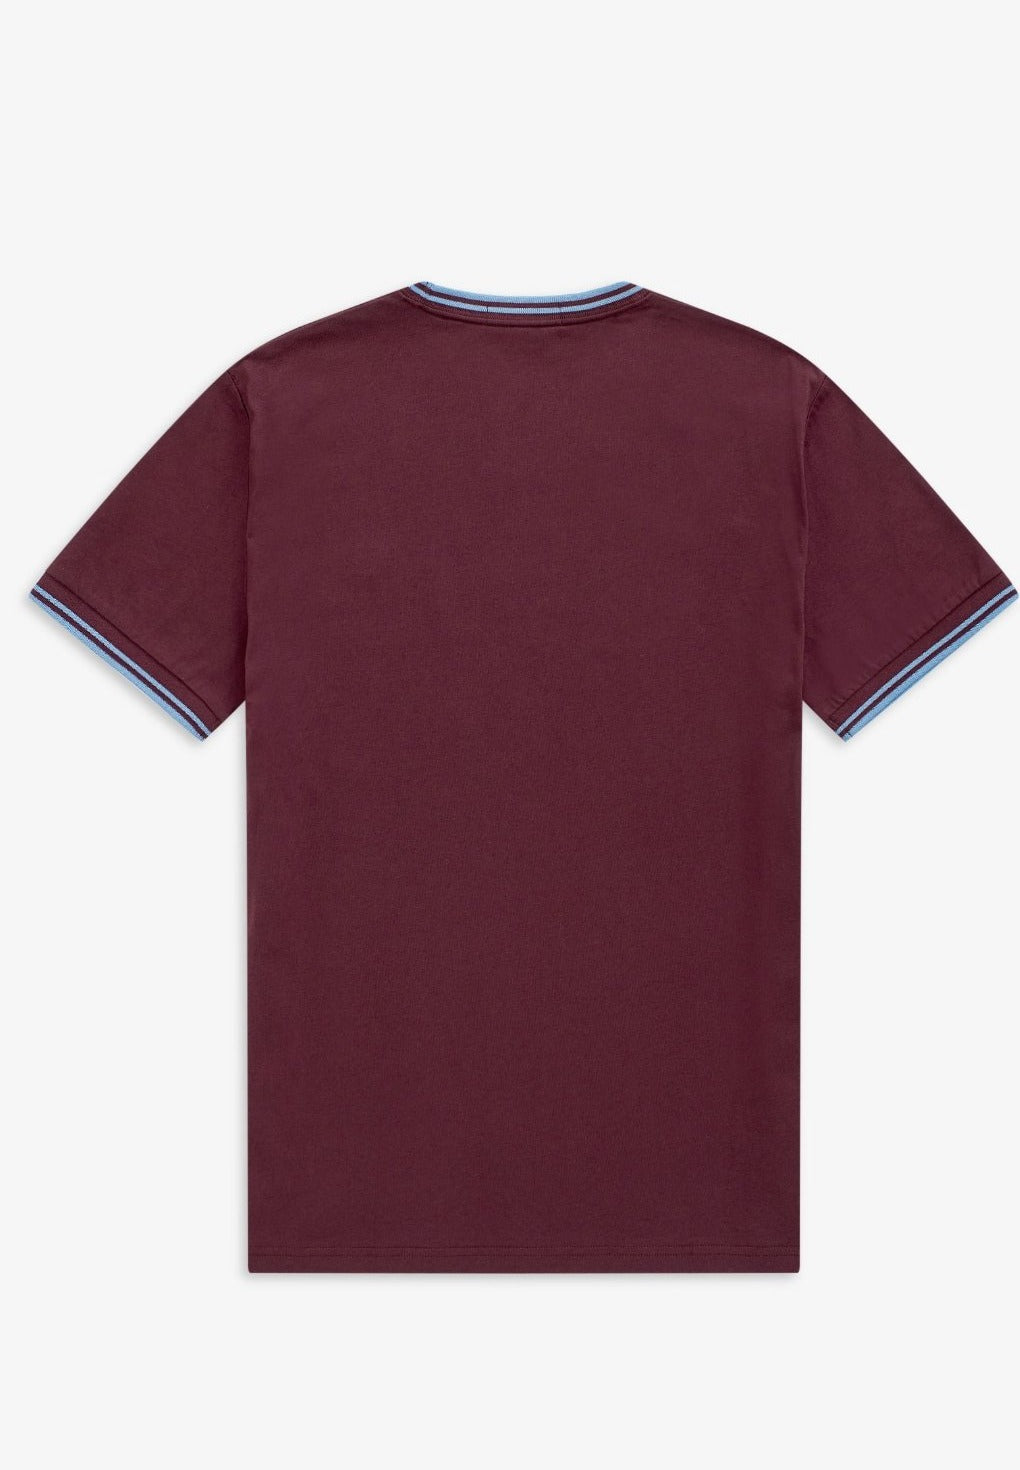 Fred Perry Twin tip t-shirt - Mahogany